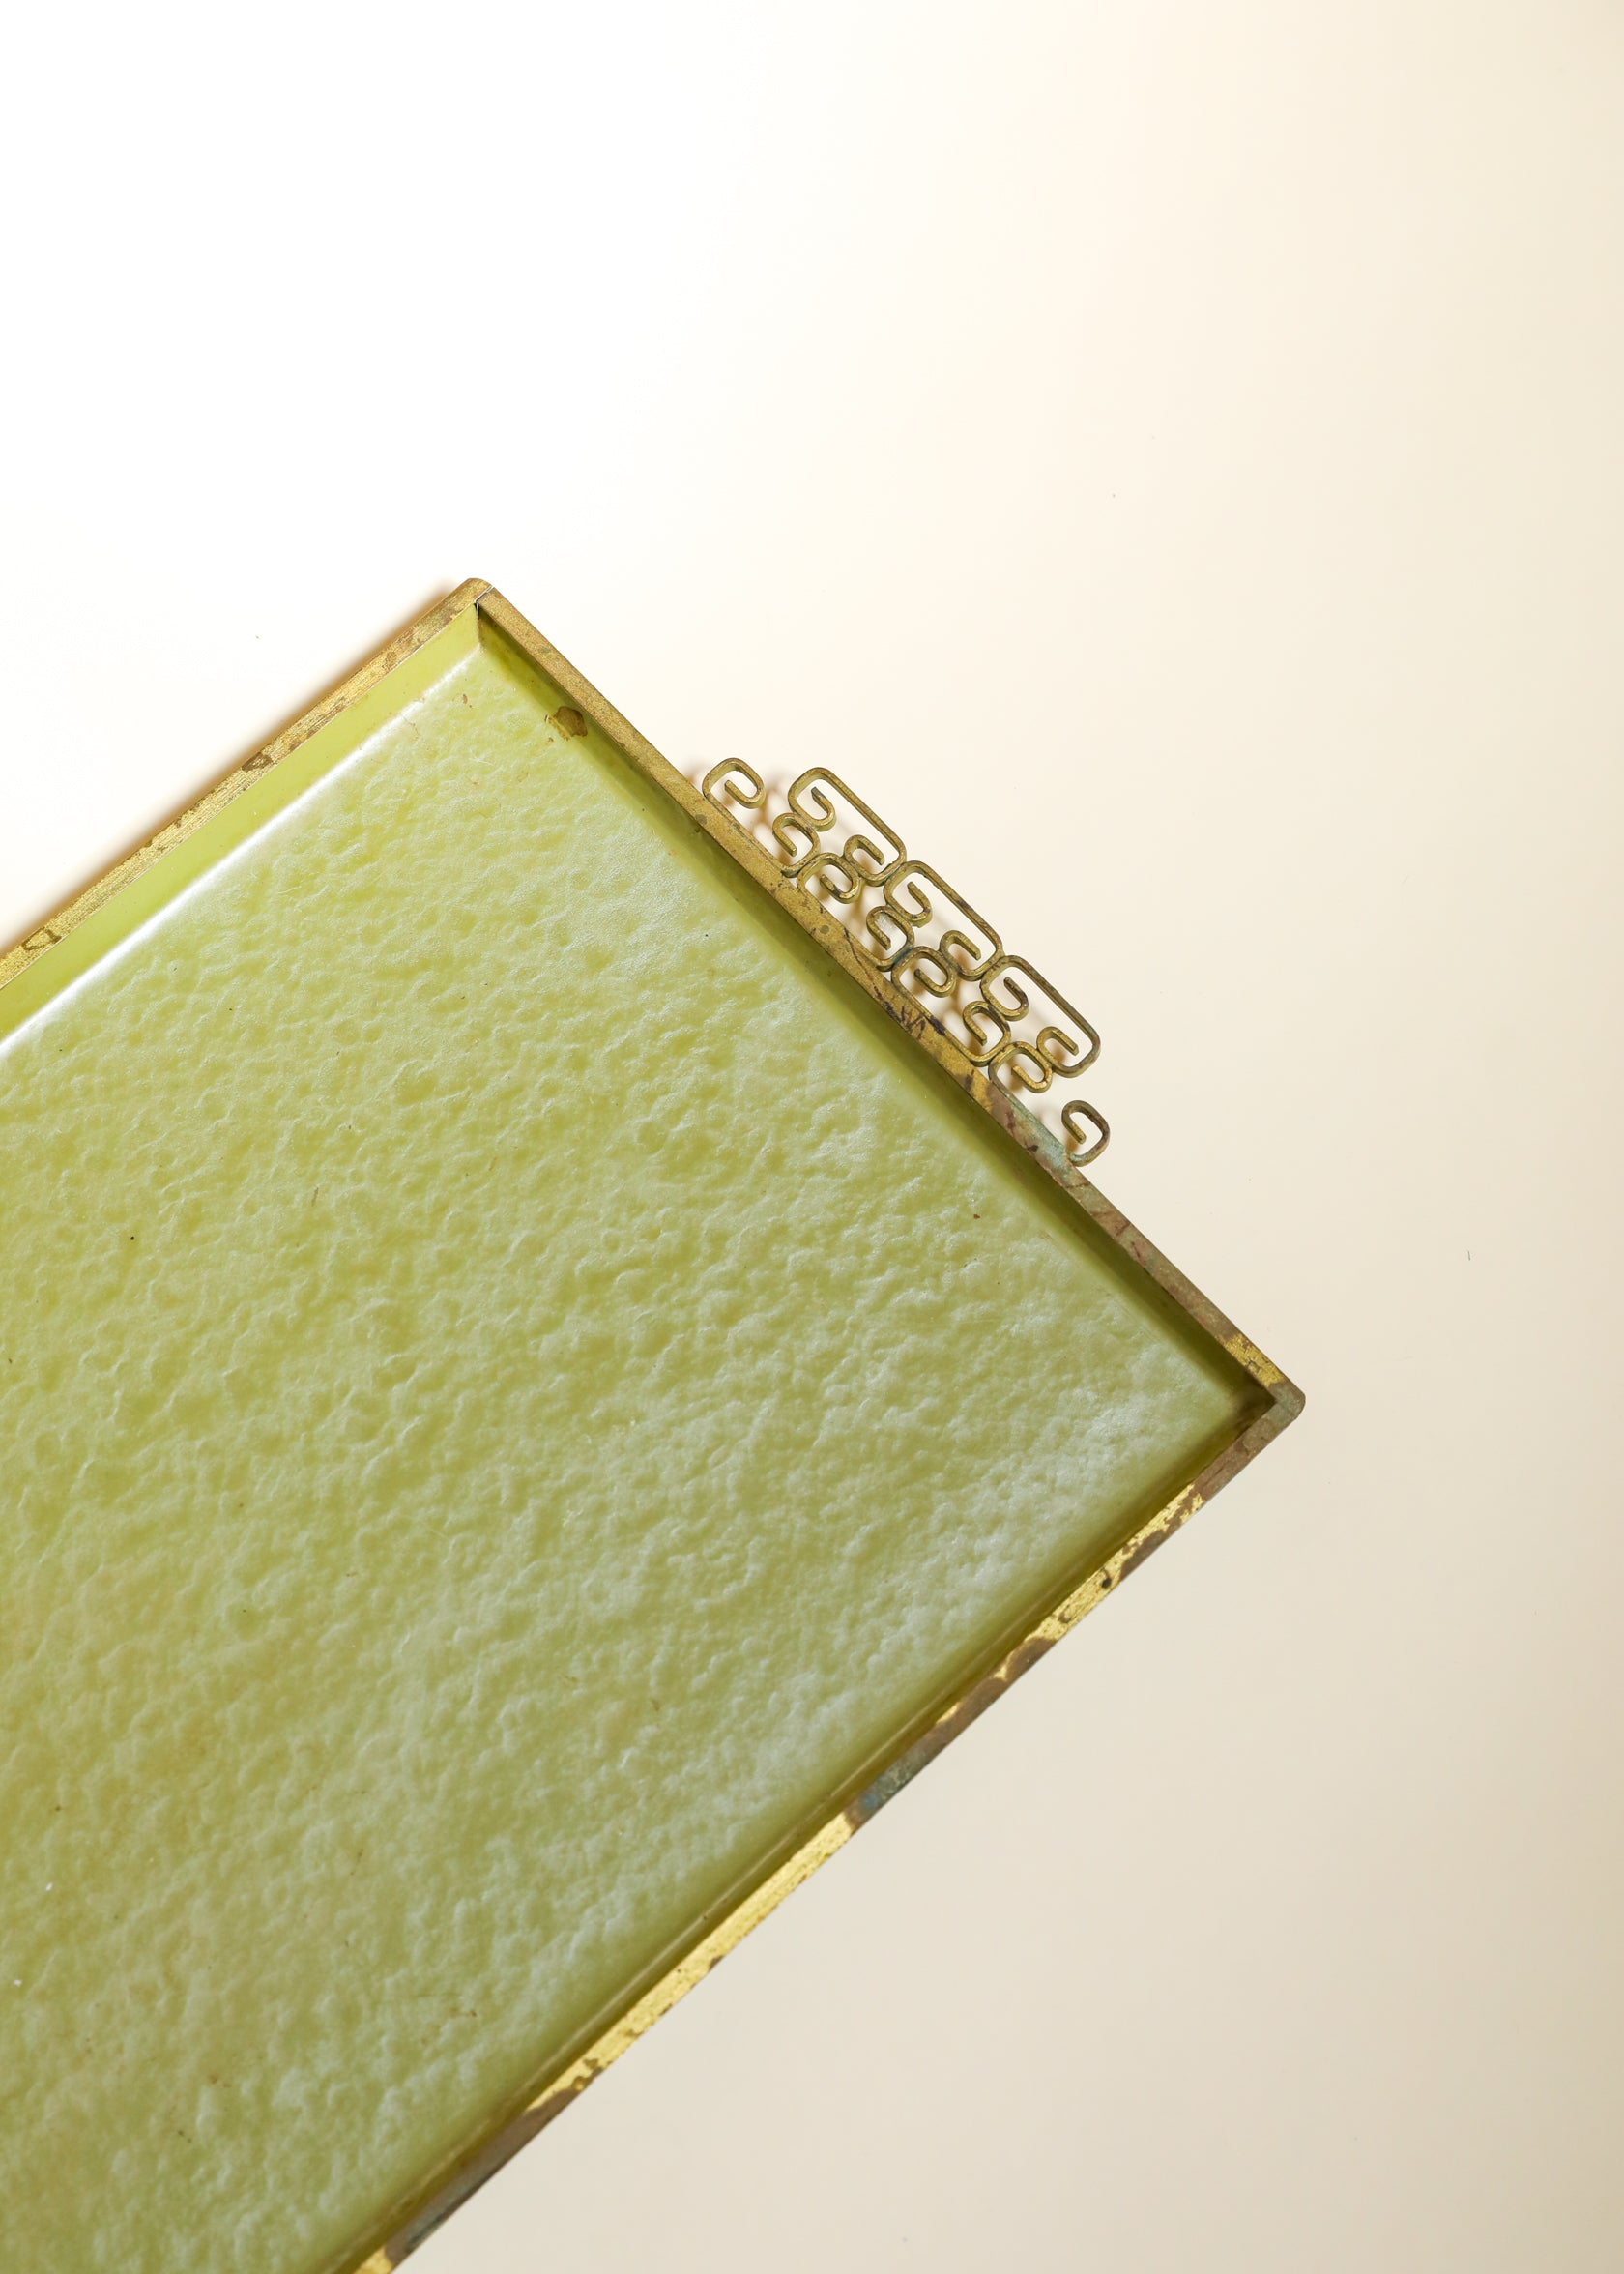 Moire Glaze Hollywood Regency Tray with Chinoiserie Handles